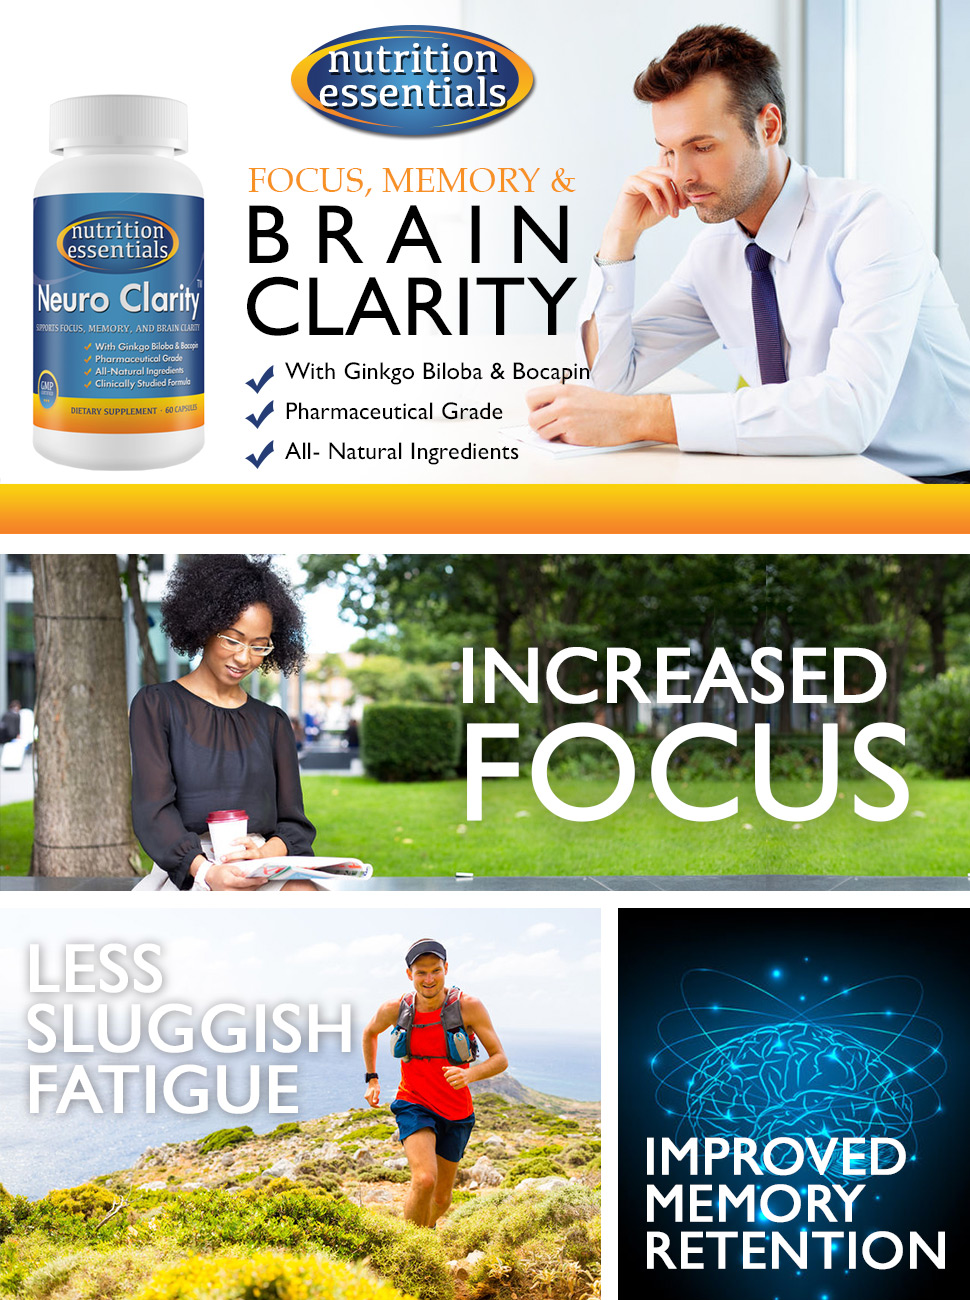 Change initiatives clarity and focus